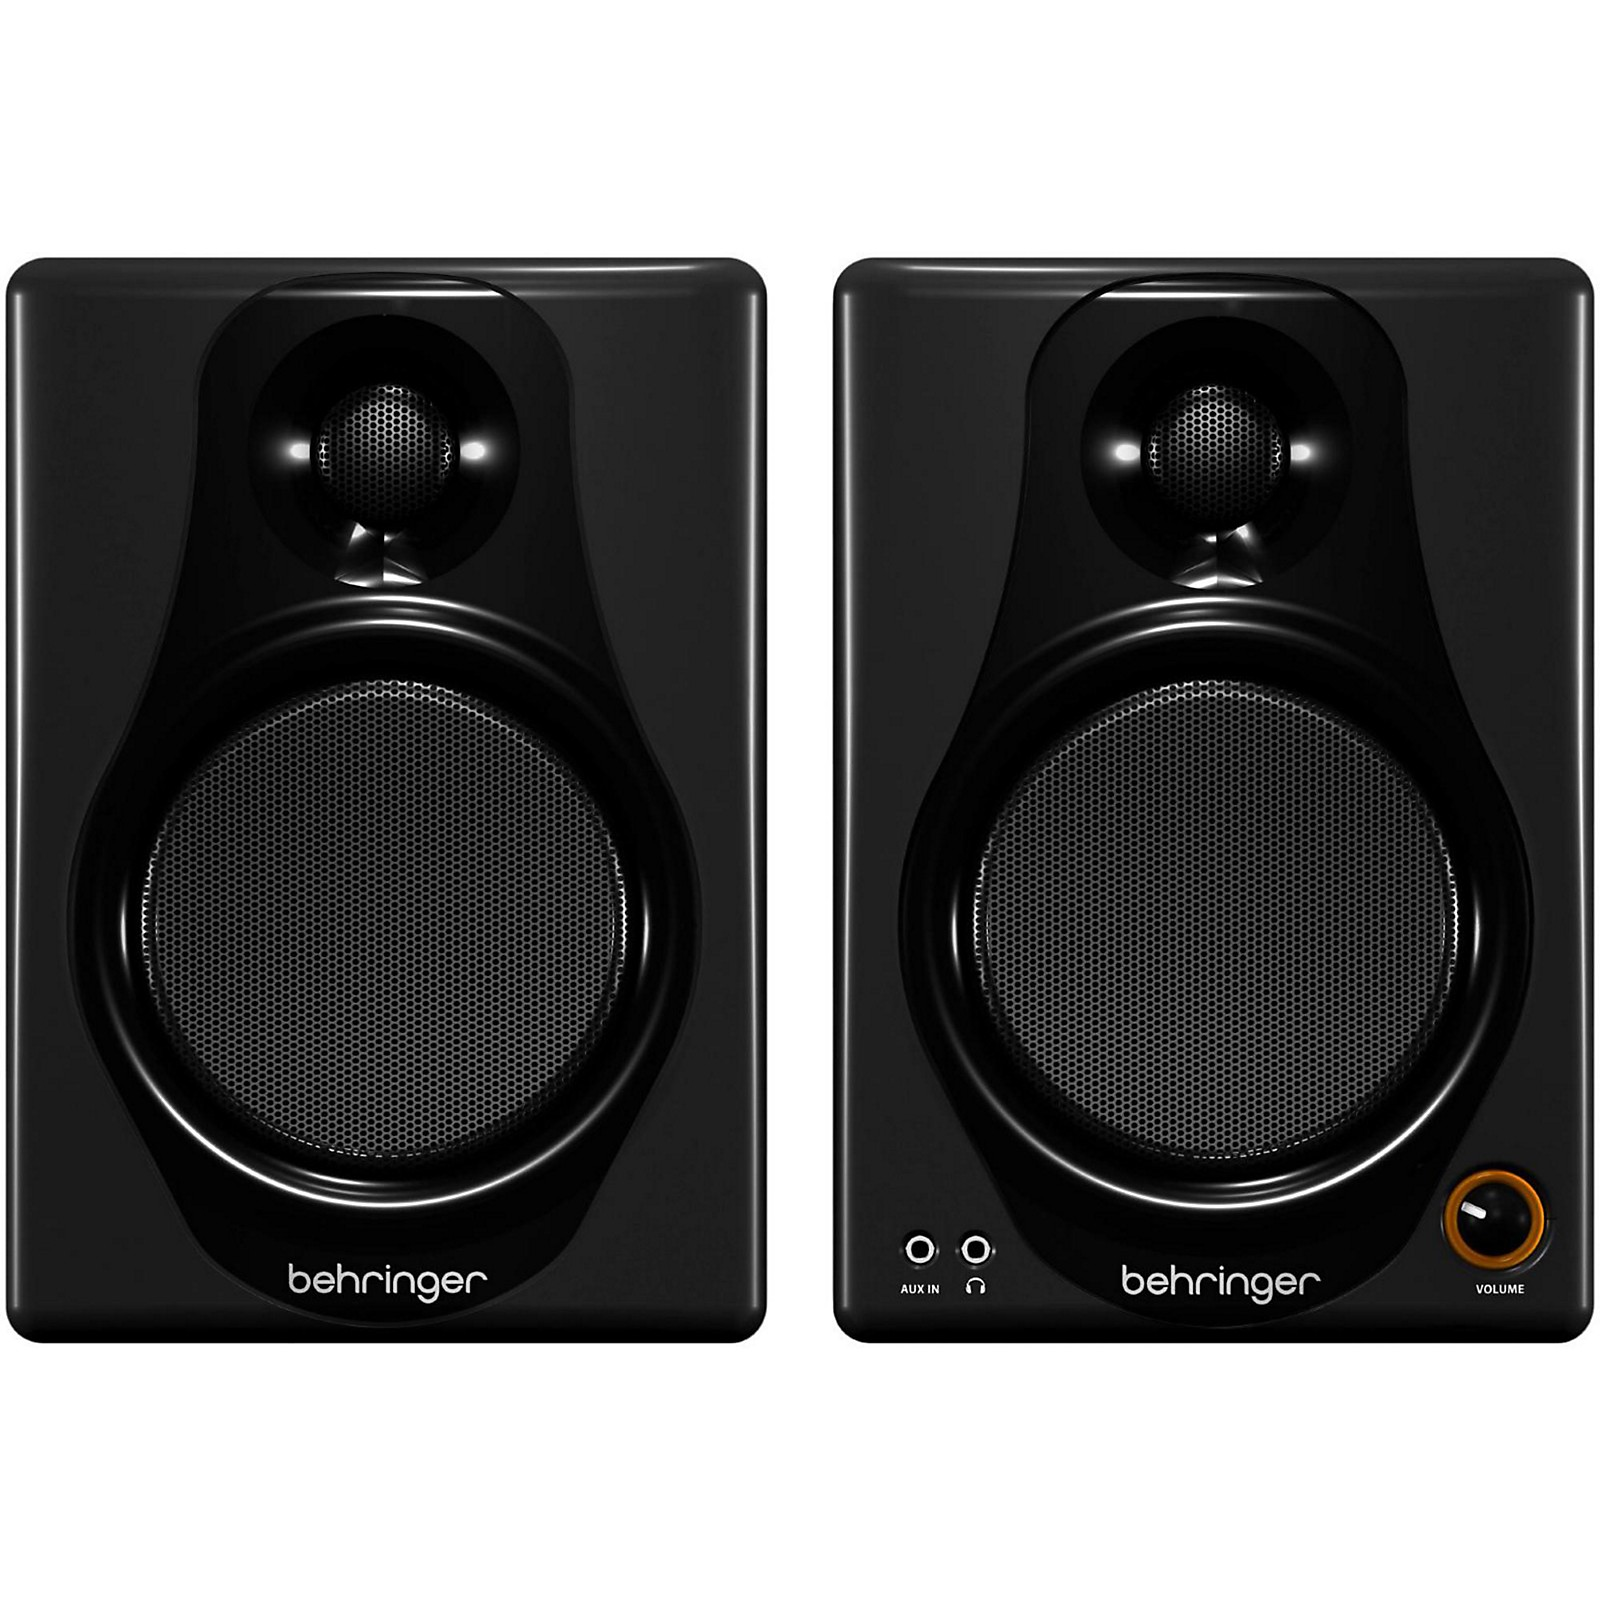 Behringer MEDIA 40USB High-Resolution,150-Watt Bi-Amped Digital Monitor Speakers with USB Input